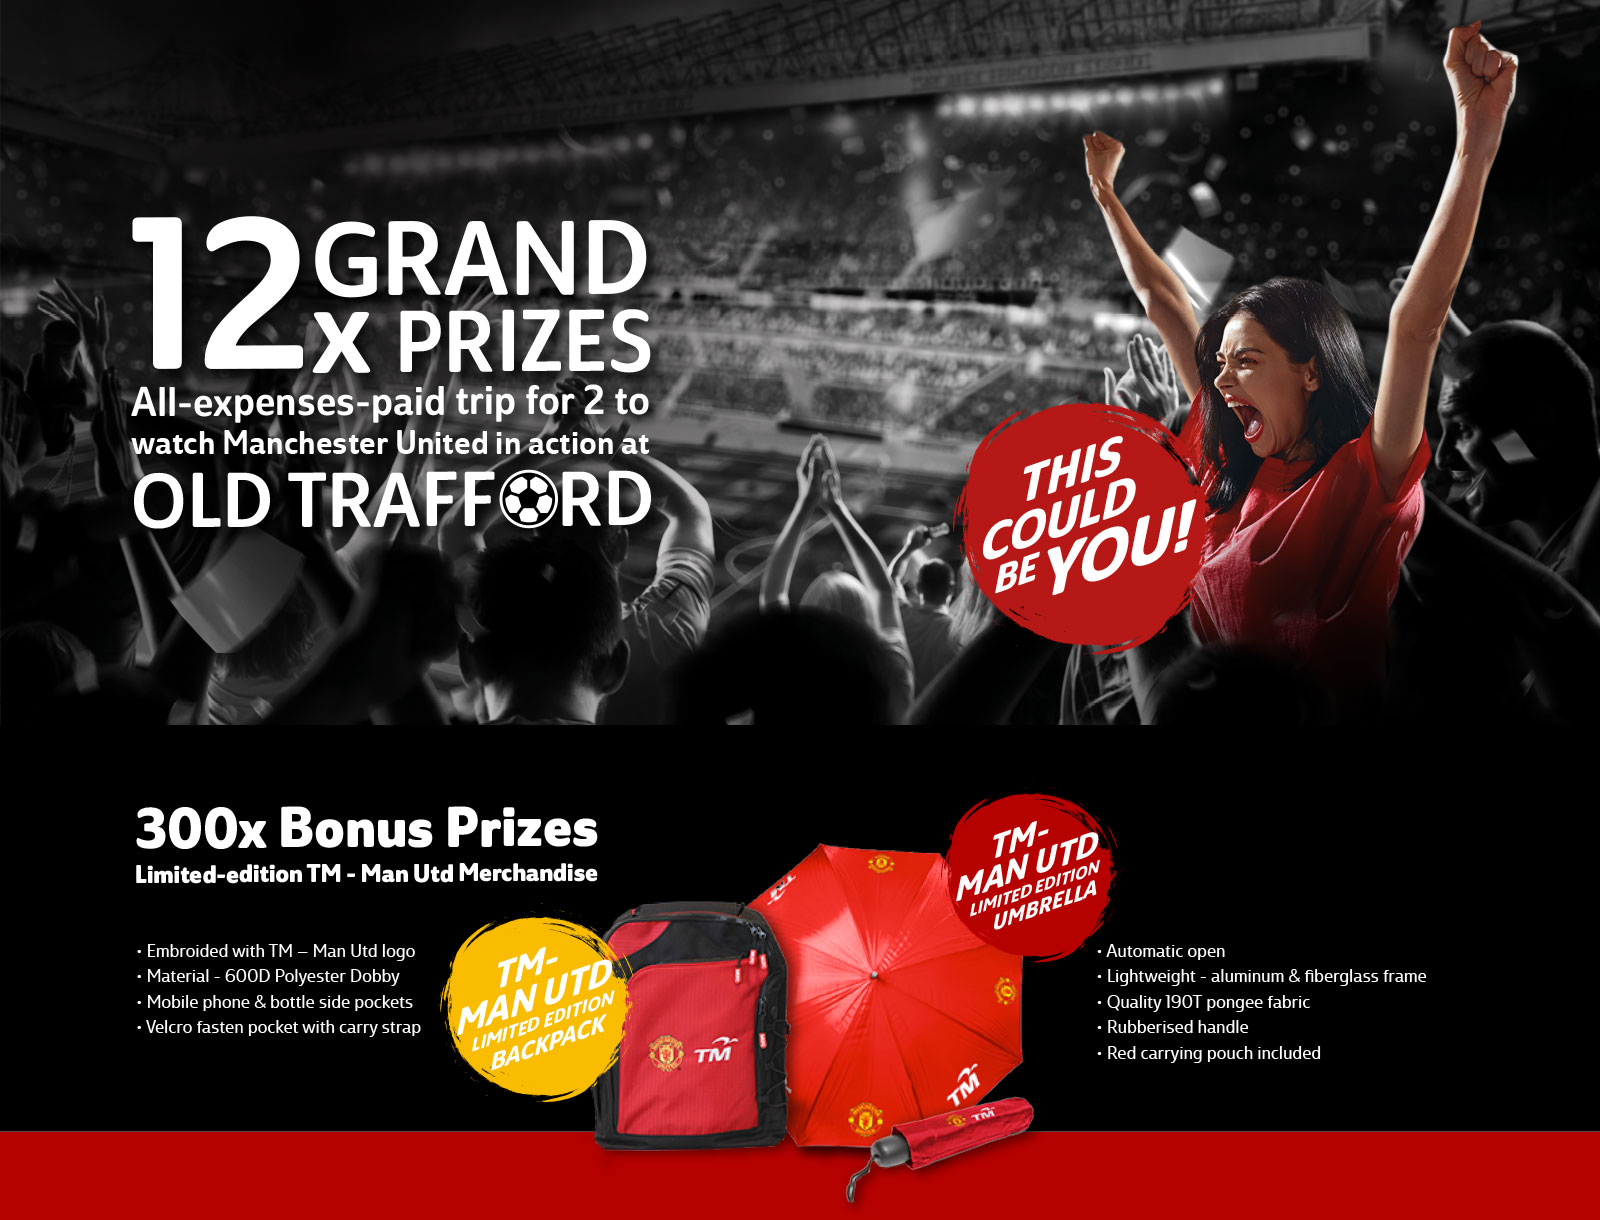 Unifi To Old Trafford Contest Blog Peraduan Terkini Dan Sensasi Di Hadiah Gift Voucher Ikea Hello Malaysian Sign Up For Or Biz Today And Stand A Chance Win Trip With All Expenses Paid 2 300 Bonus Prizes